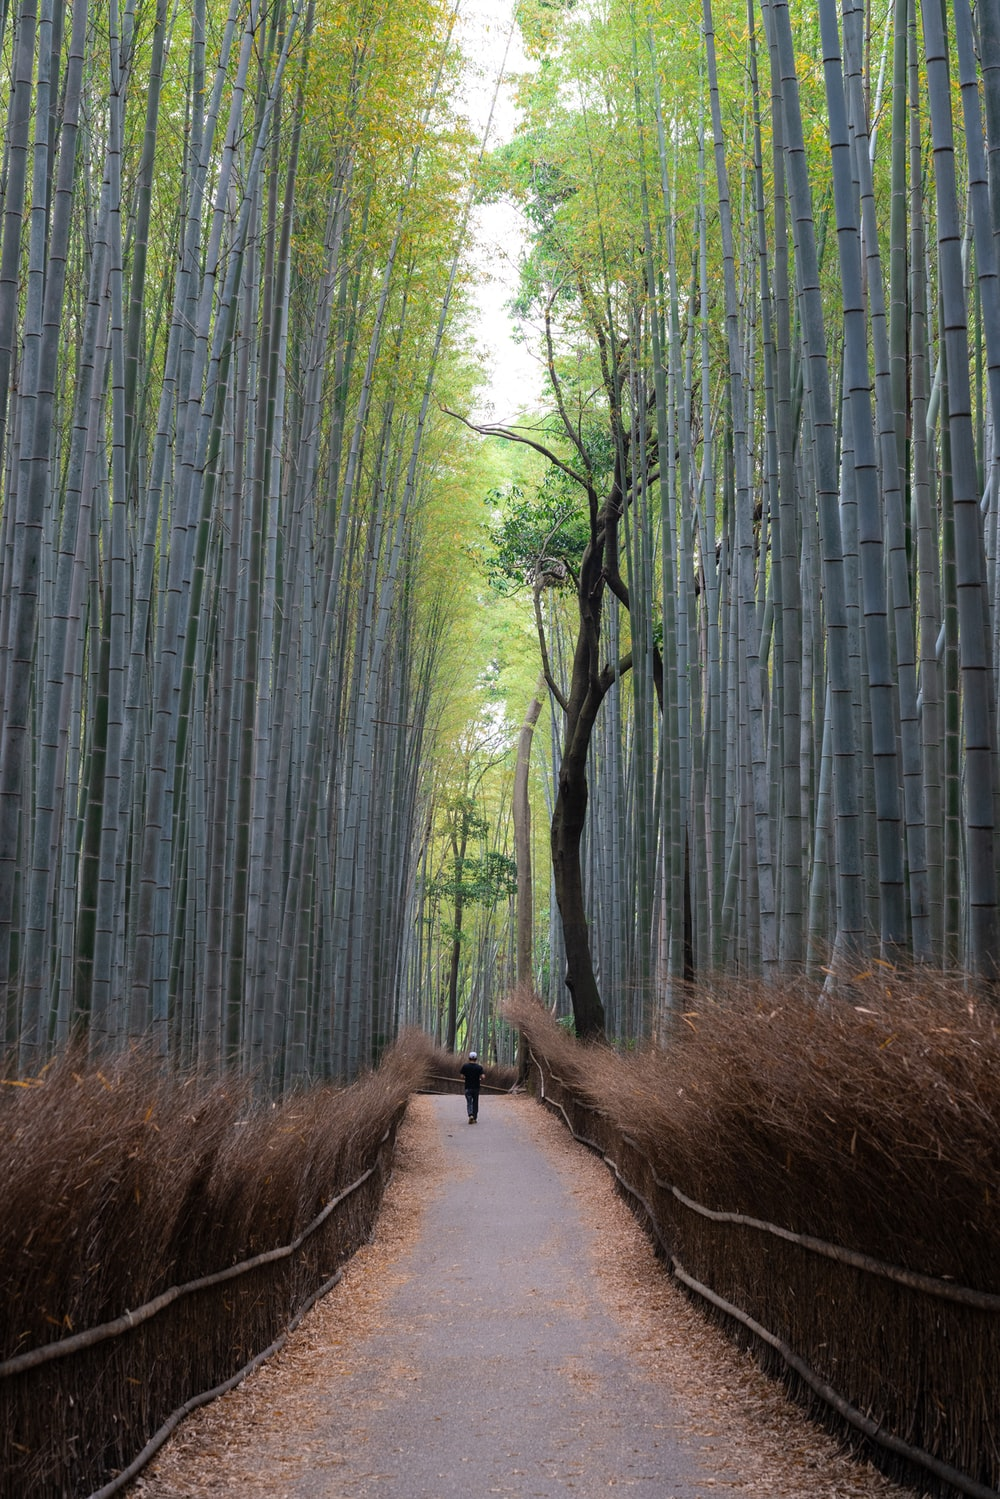 pathway with bamboo trees beside